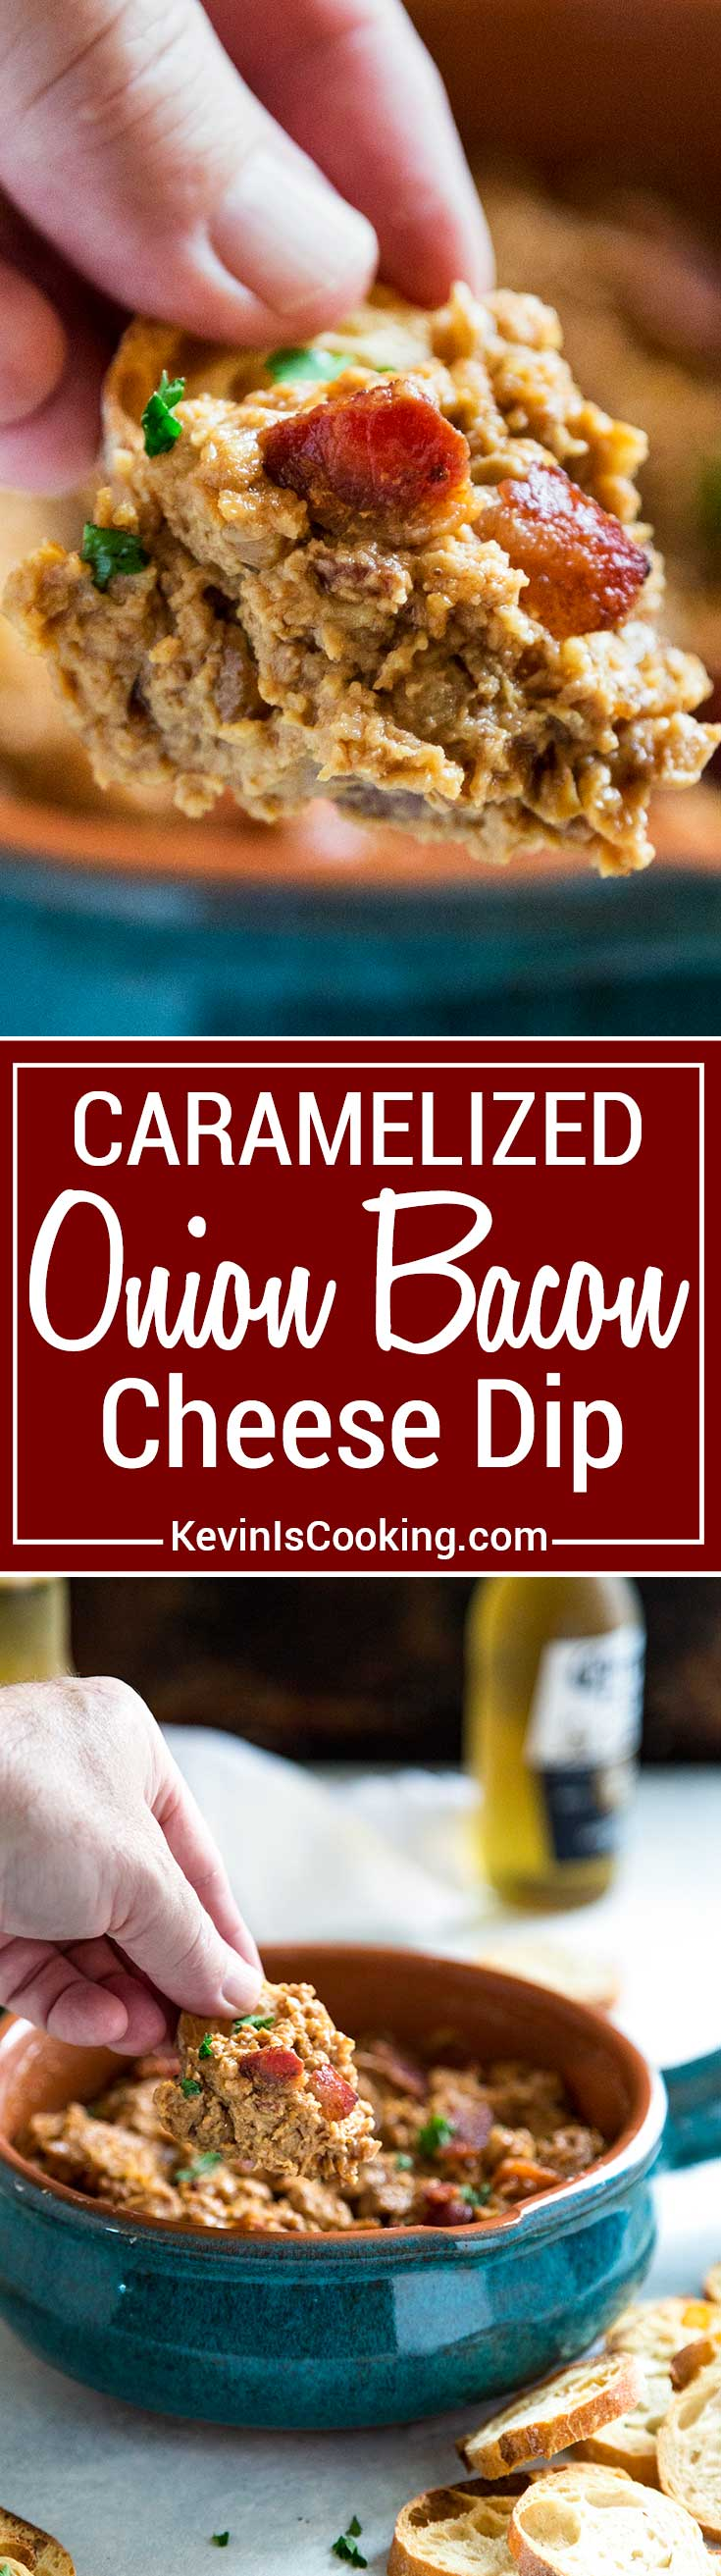 Bacon Cheese Dip - When caramelized onions mix with balsamic vinegar, brown sugar, Dijon and Sriracha then meet up with 3 cheeses it ends up being one killer appetizer to spread on toasted bread slices or crackers!